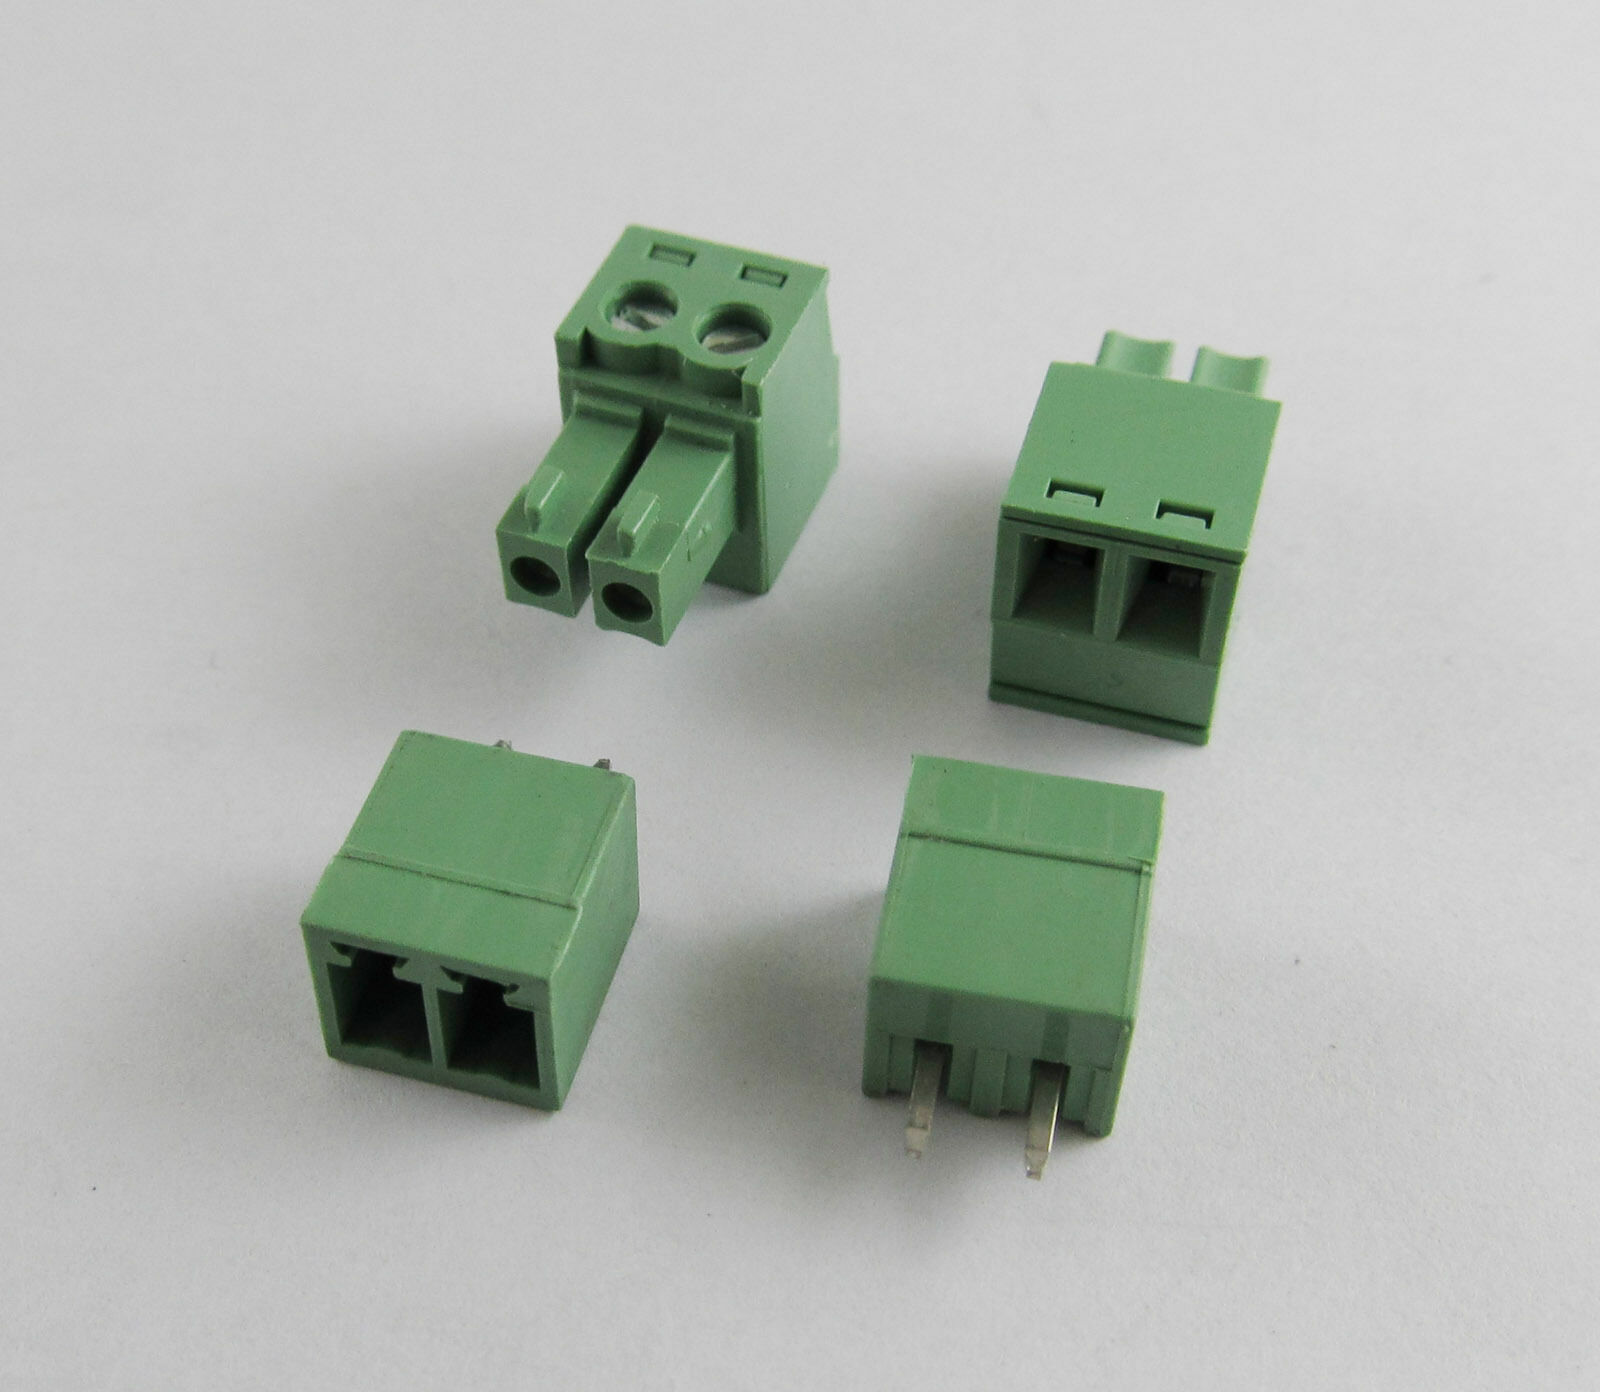 New 6 Pin//Way Pitch 3.81mm Screw Terminal Block Connector Green Pluggable Type